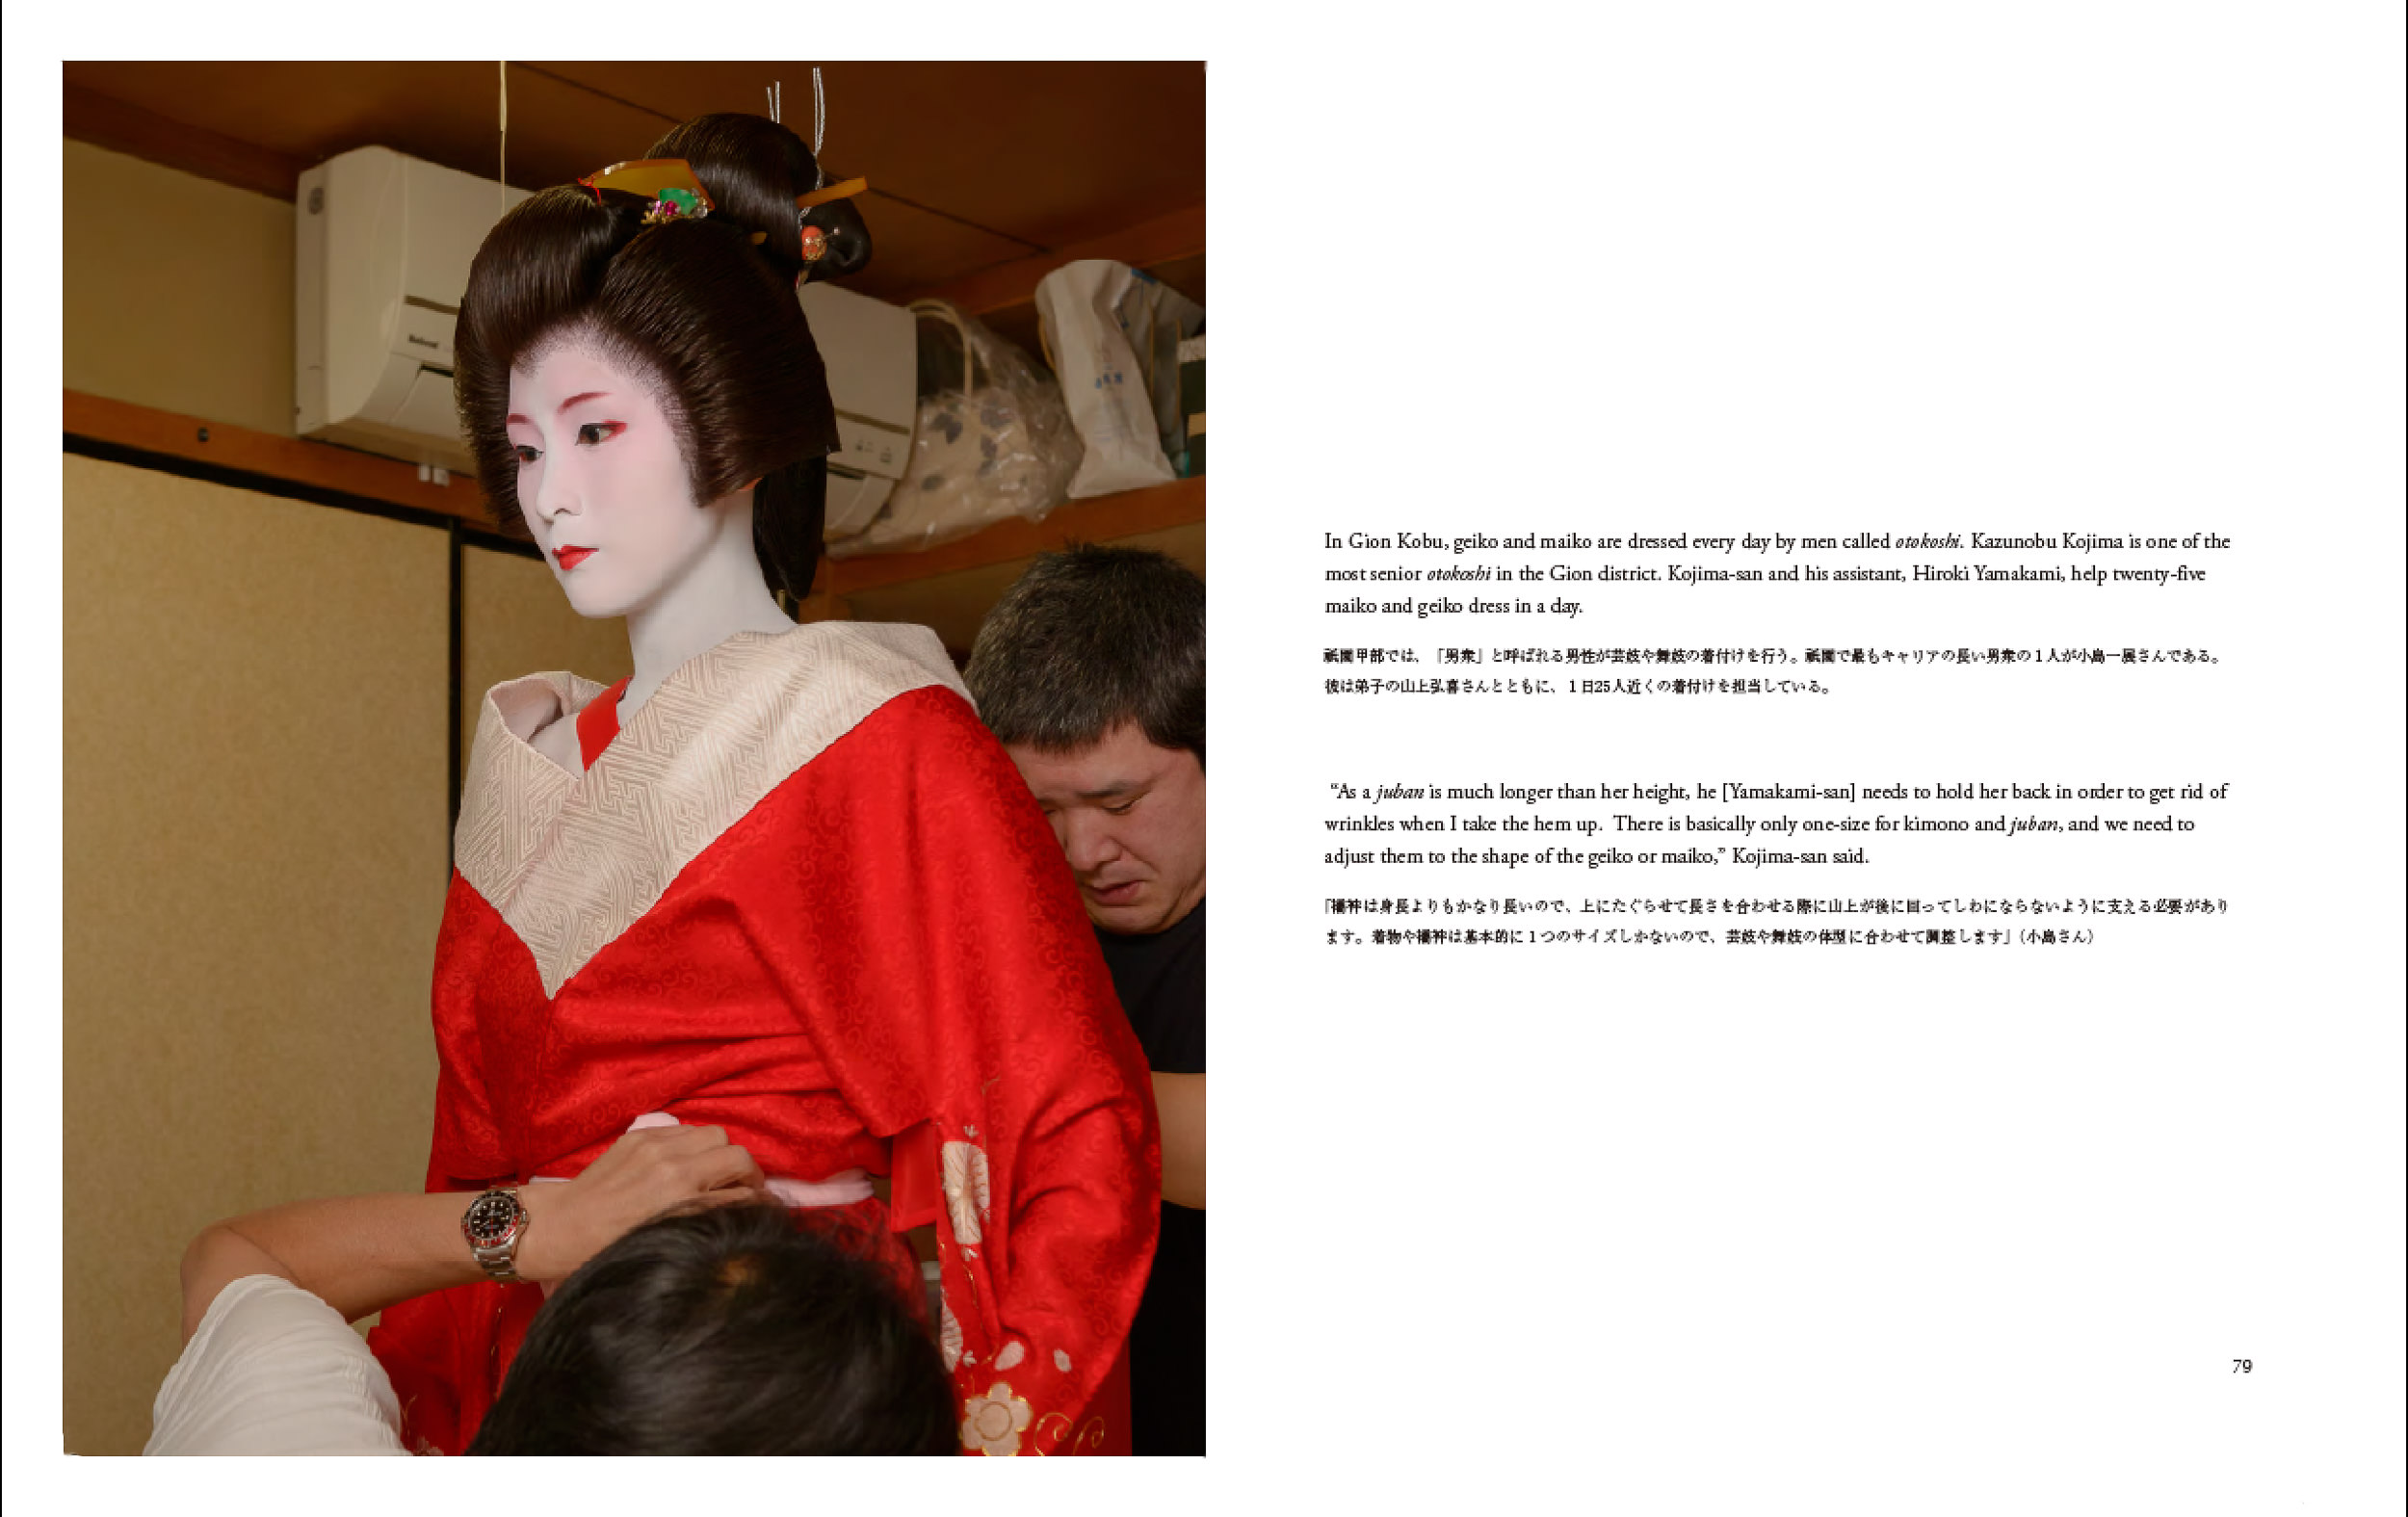 Now-a-Geisha-pages-78-9.jpg